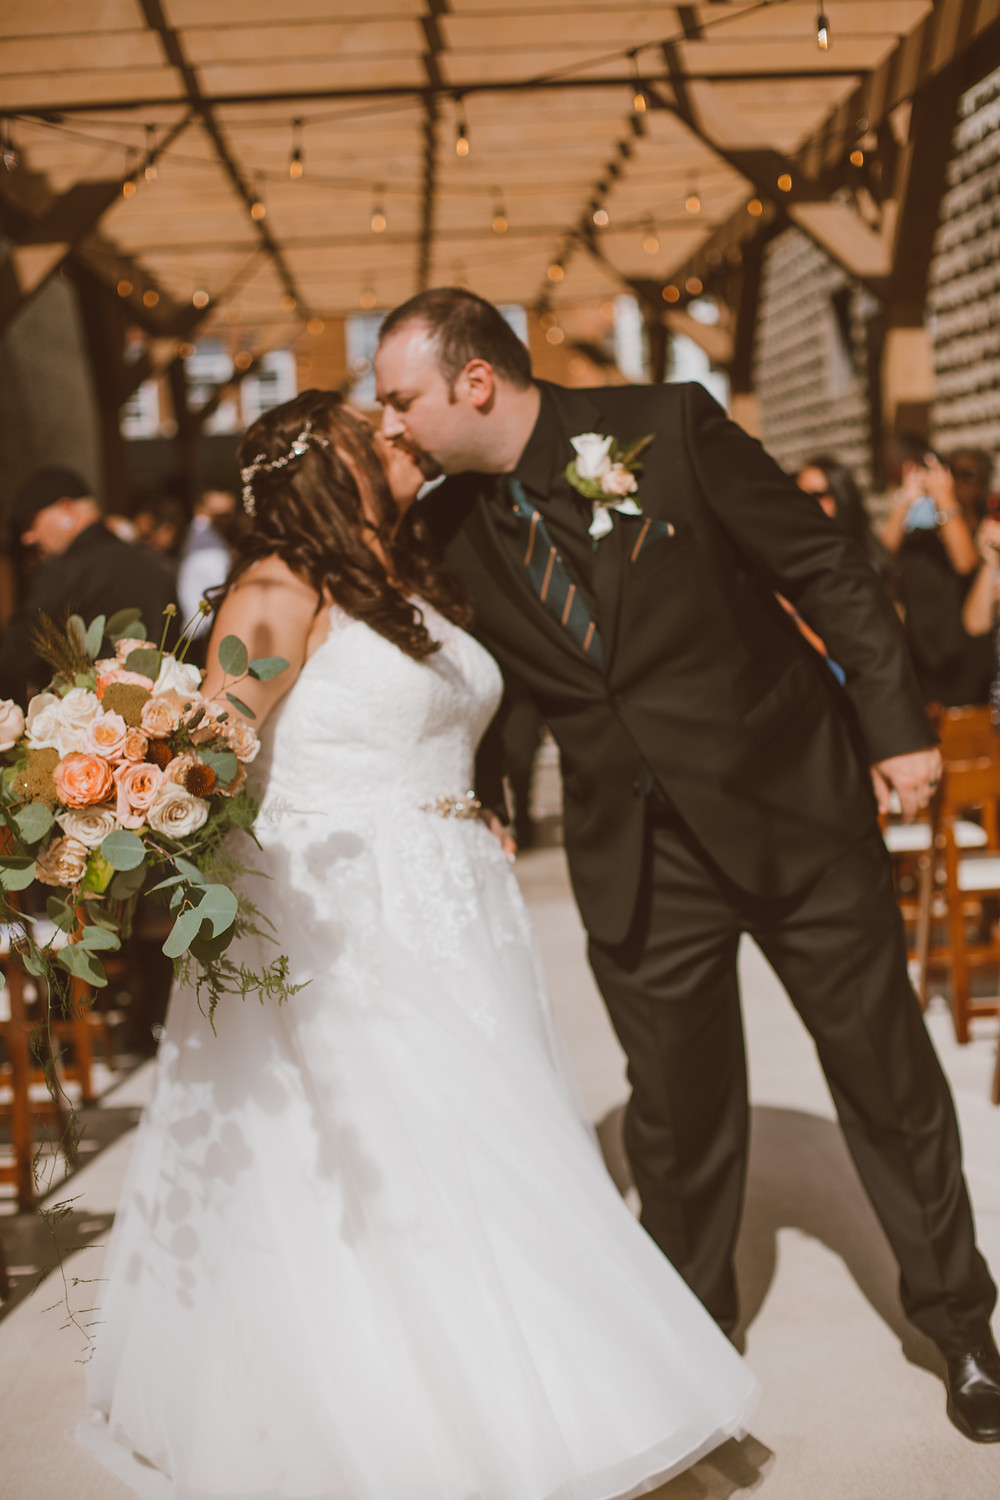 Modern, urban wedding at Mercantile Hall in Burlington, WI.